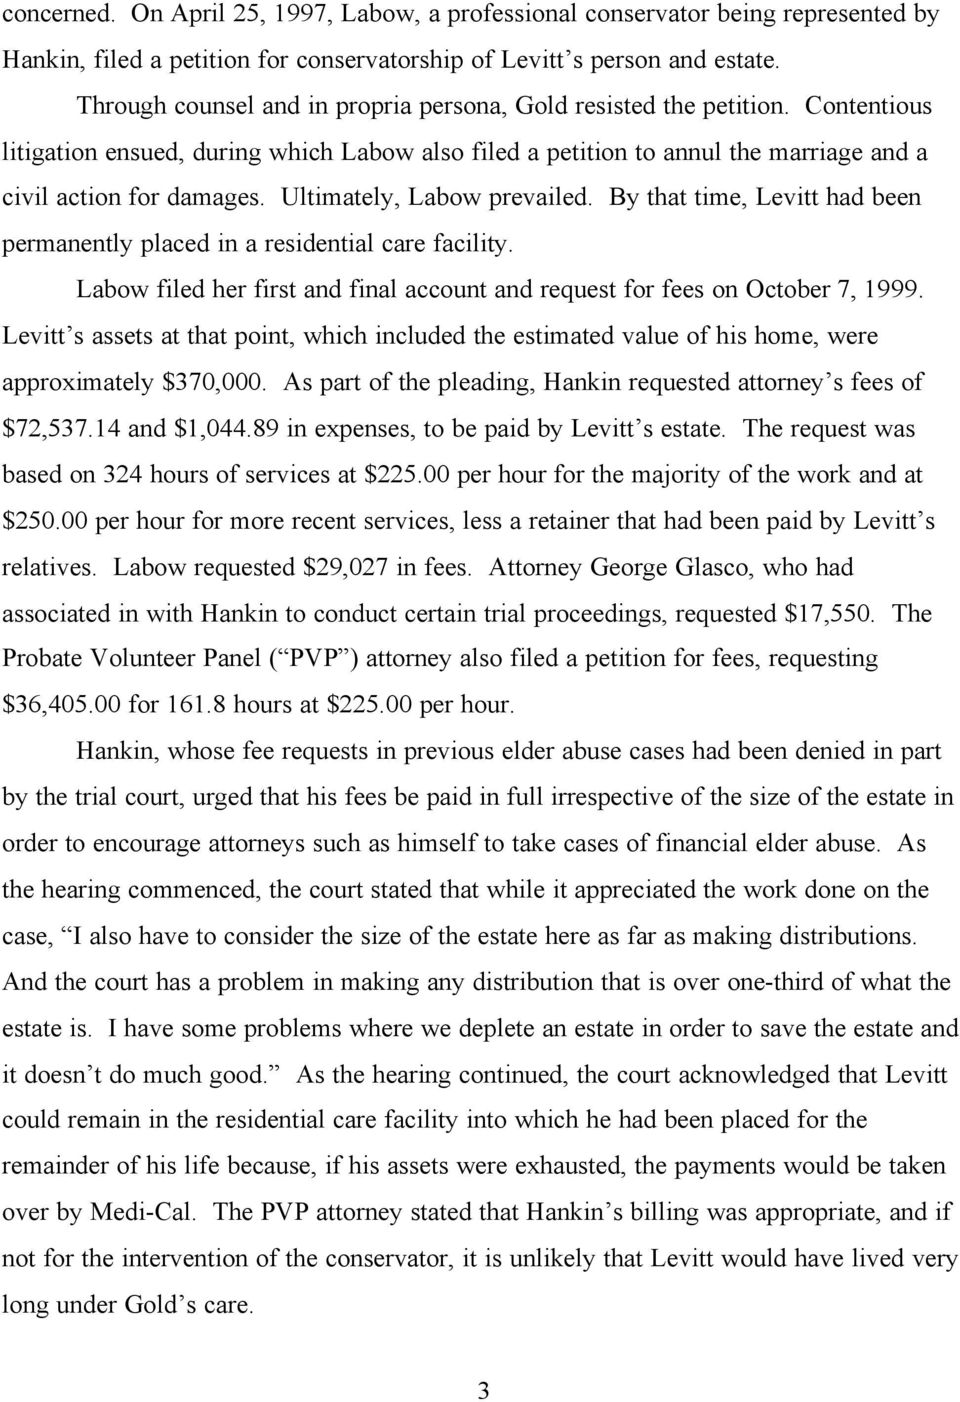 Ultimately, Labow prevailed. By that time, Levitt had been permanently placed in a residential care facility. Labow filed her first and final account and request for fees on October 7, 1999.